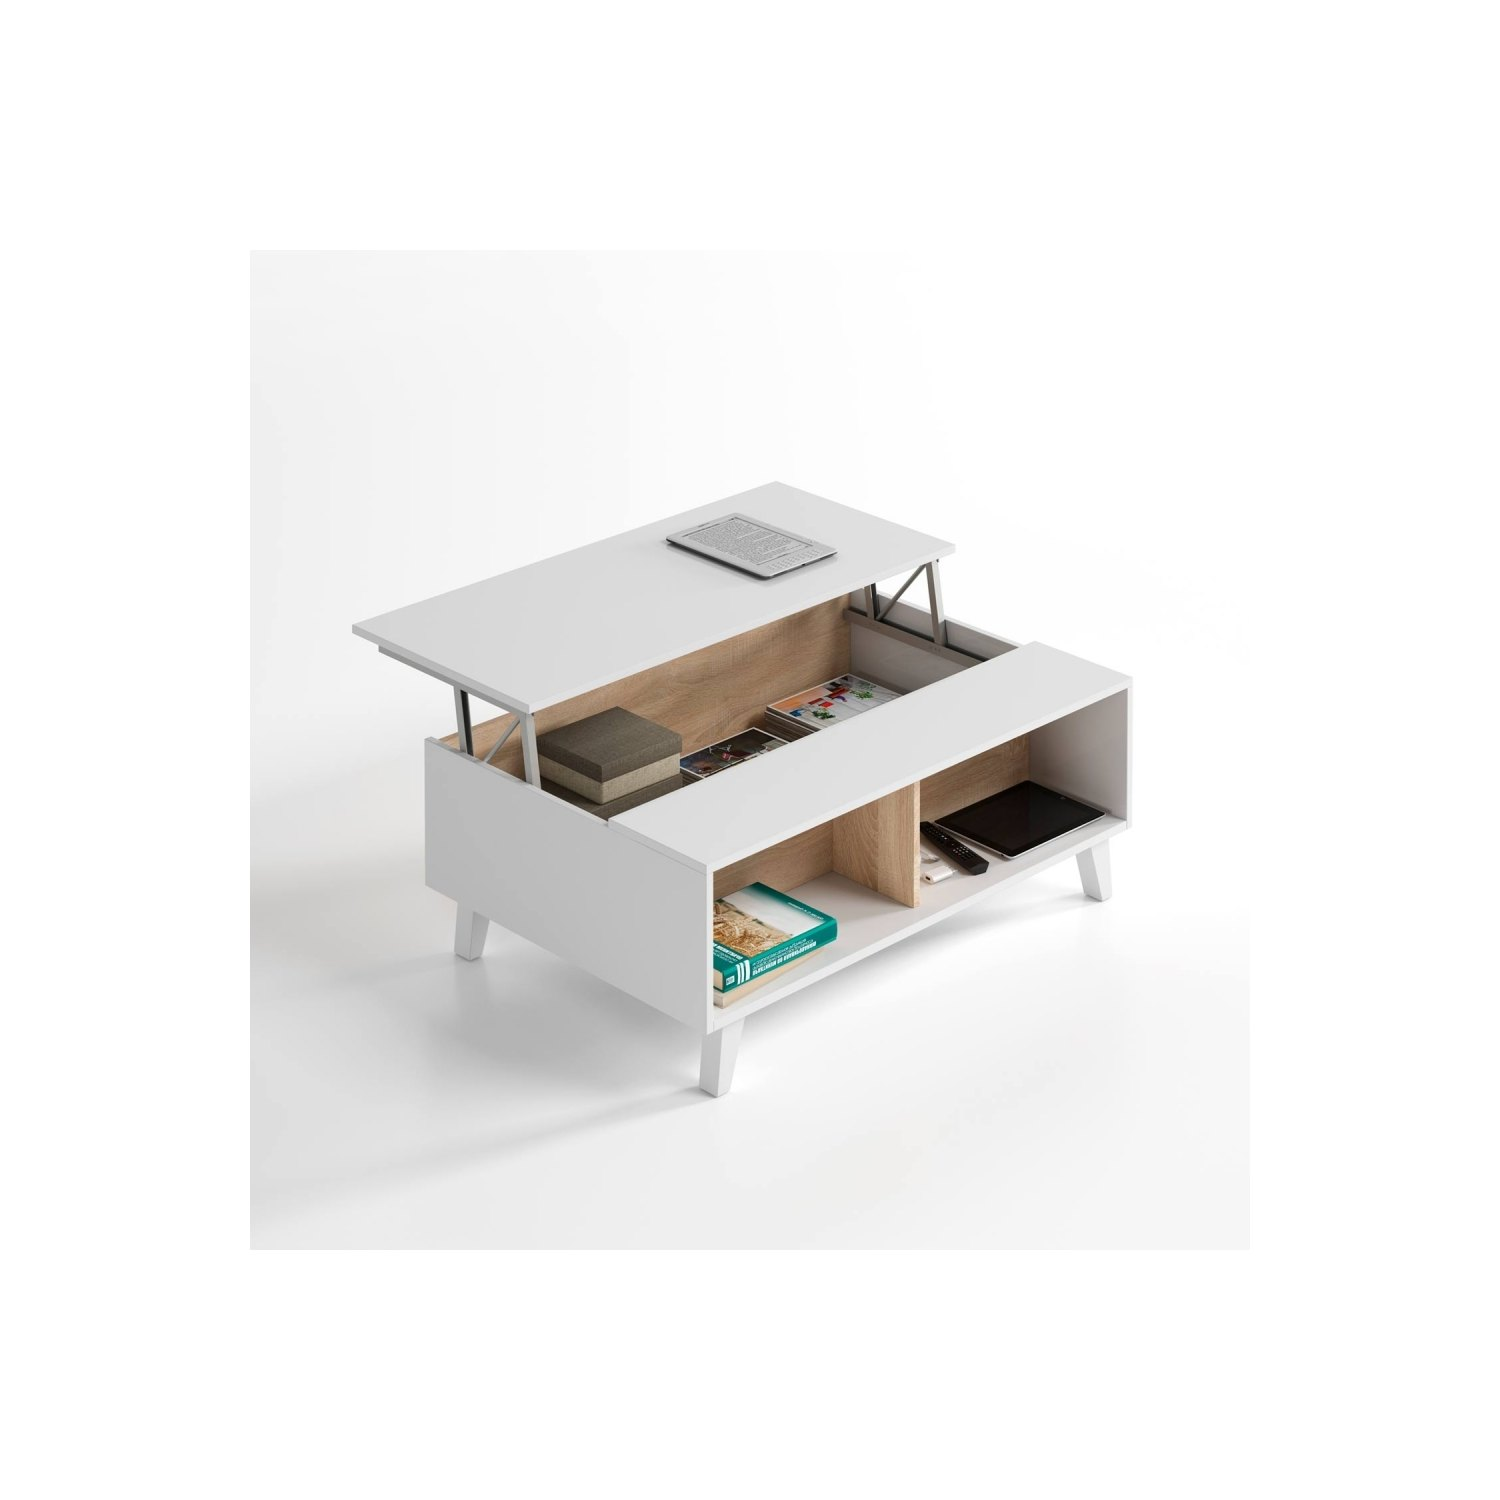 Pack muebles piso completo piso completo plus 2 0 for Muebles para pisos completos